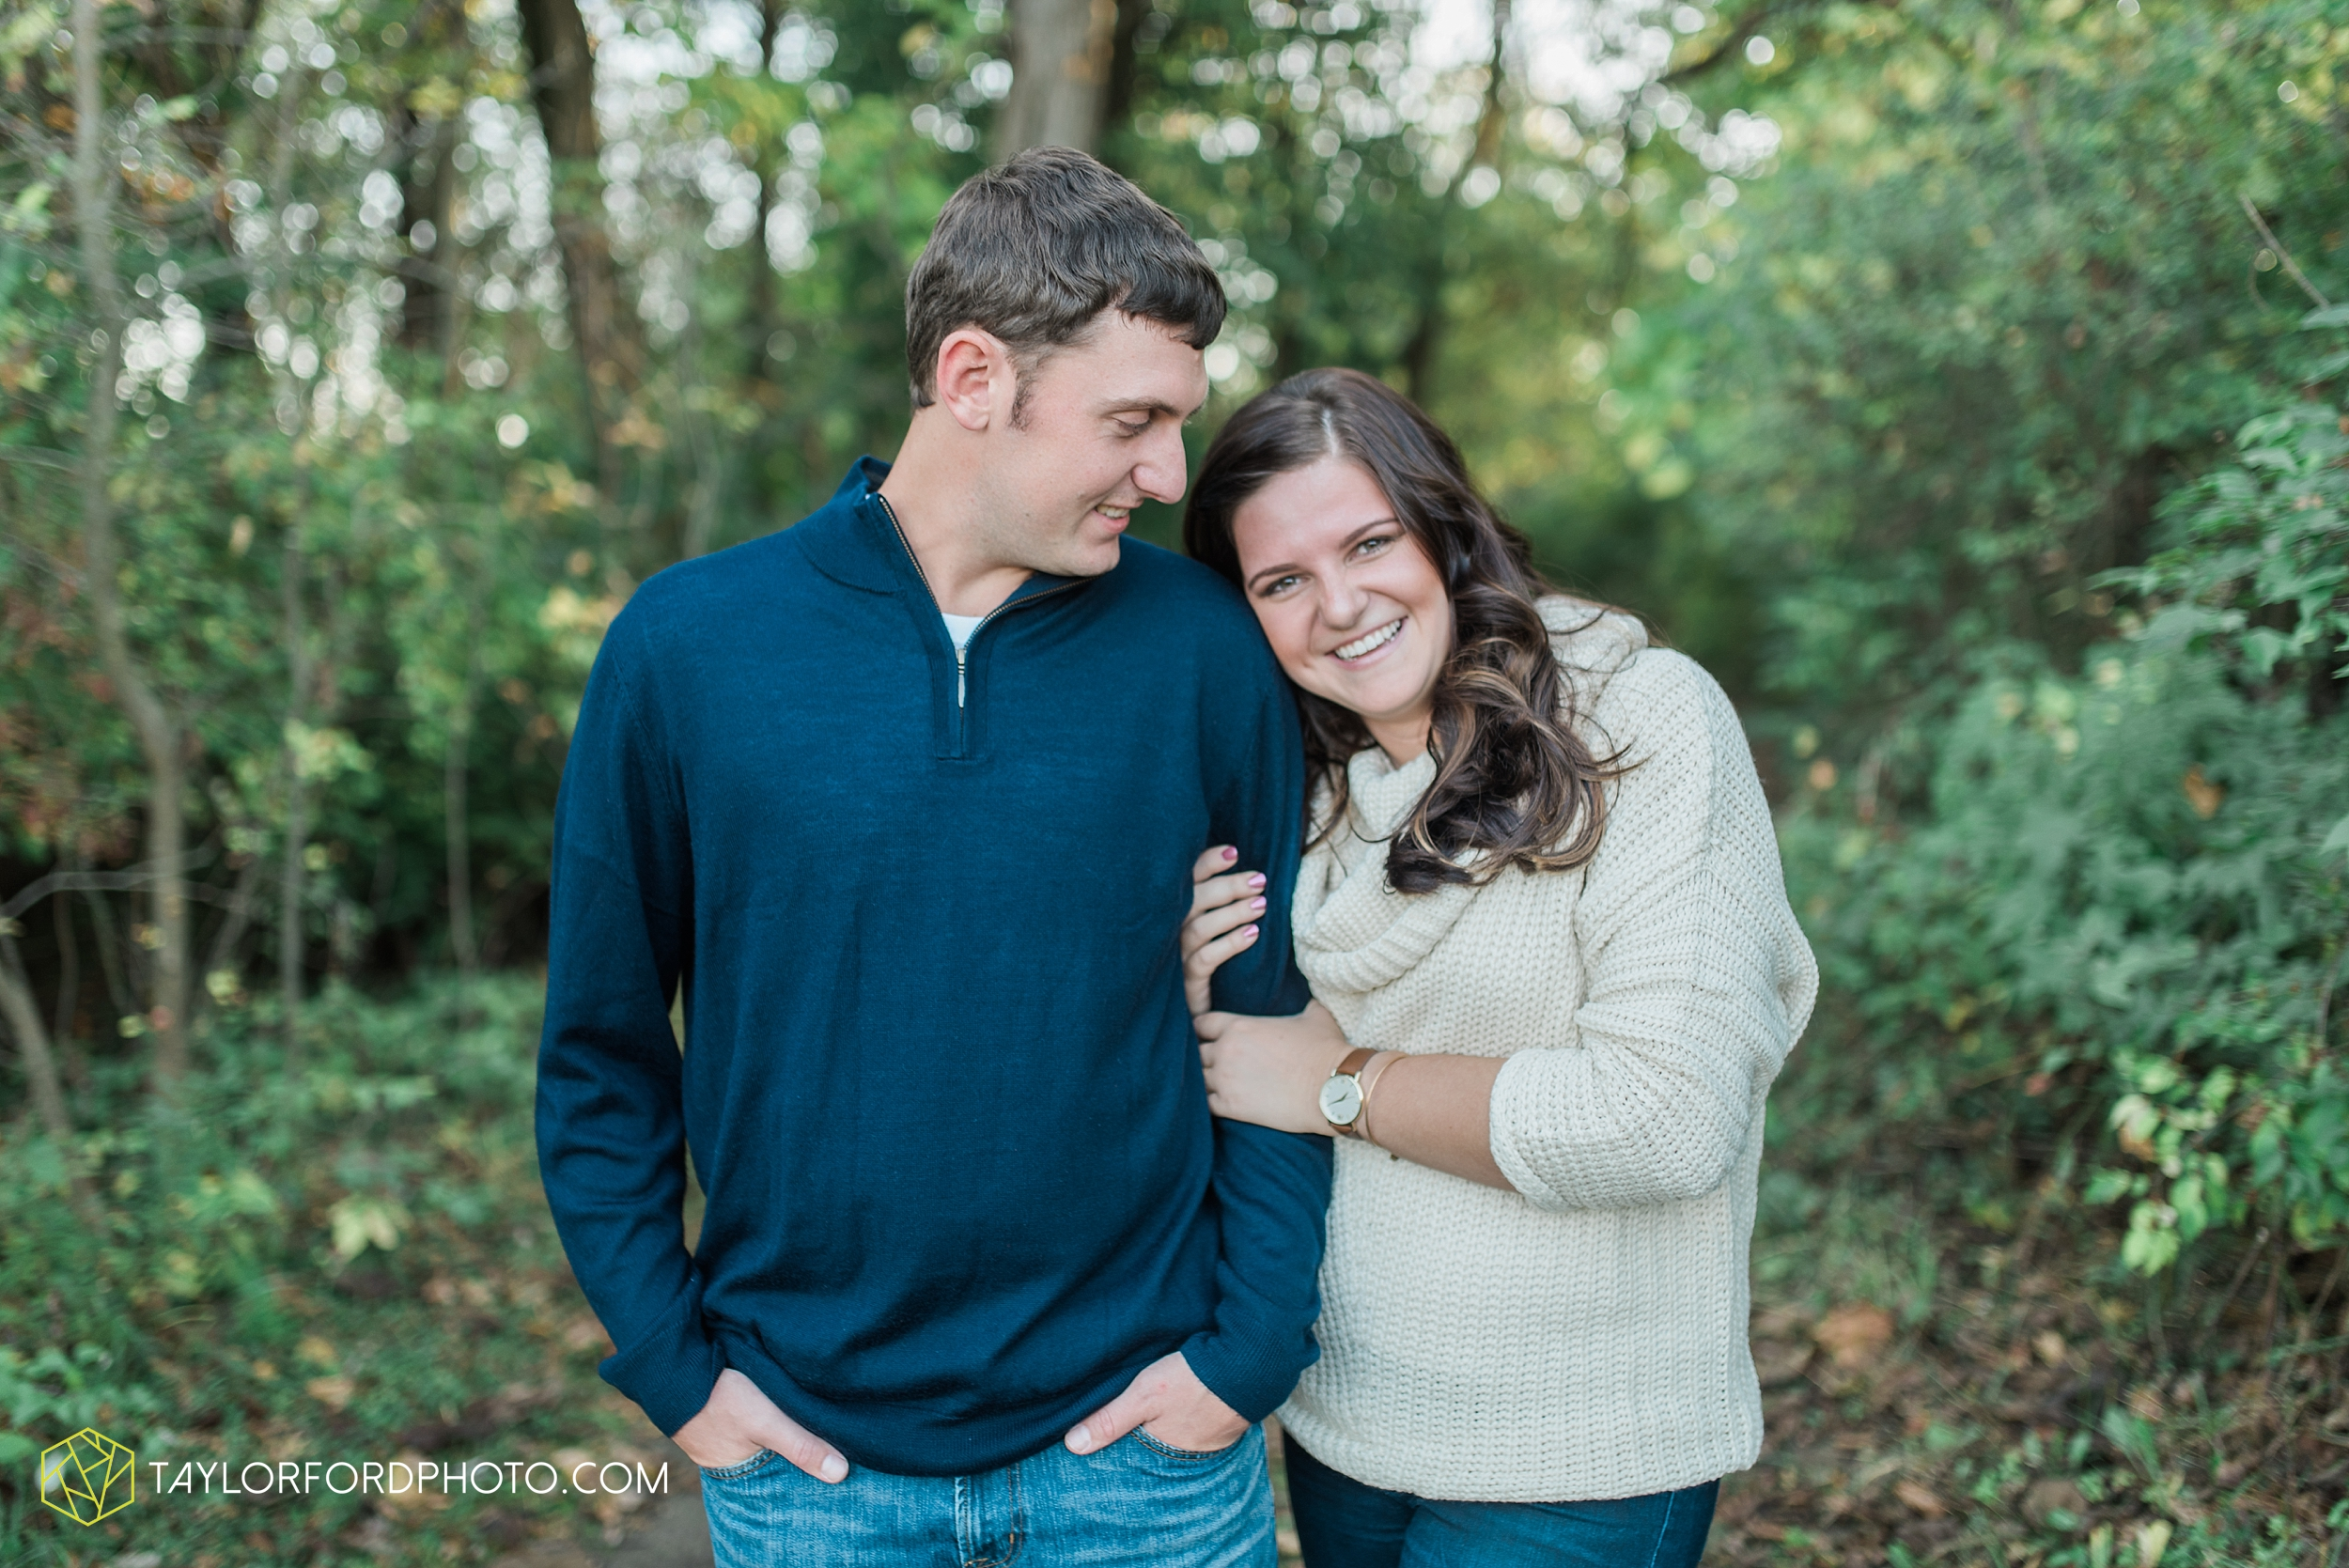 fort-wayne-indiana-engagement-wedding-photographer-Taylor-Ford-Photography-salomon-farm-park_3571.jpg